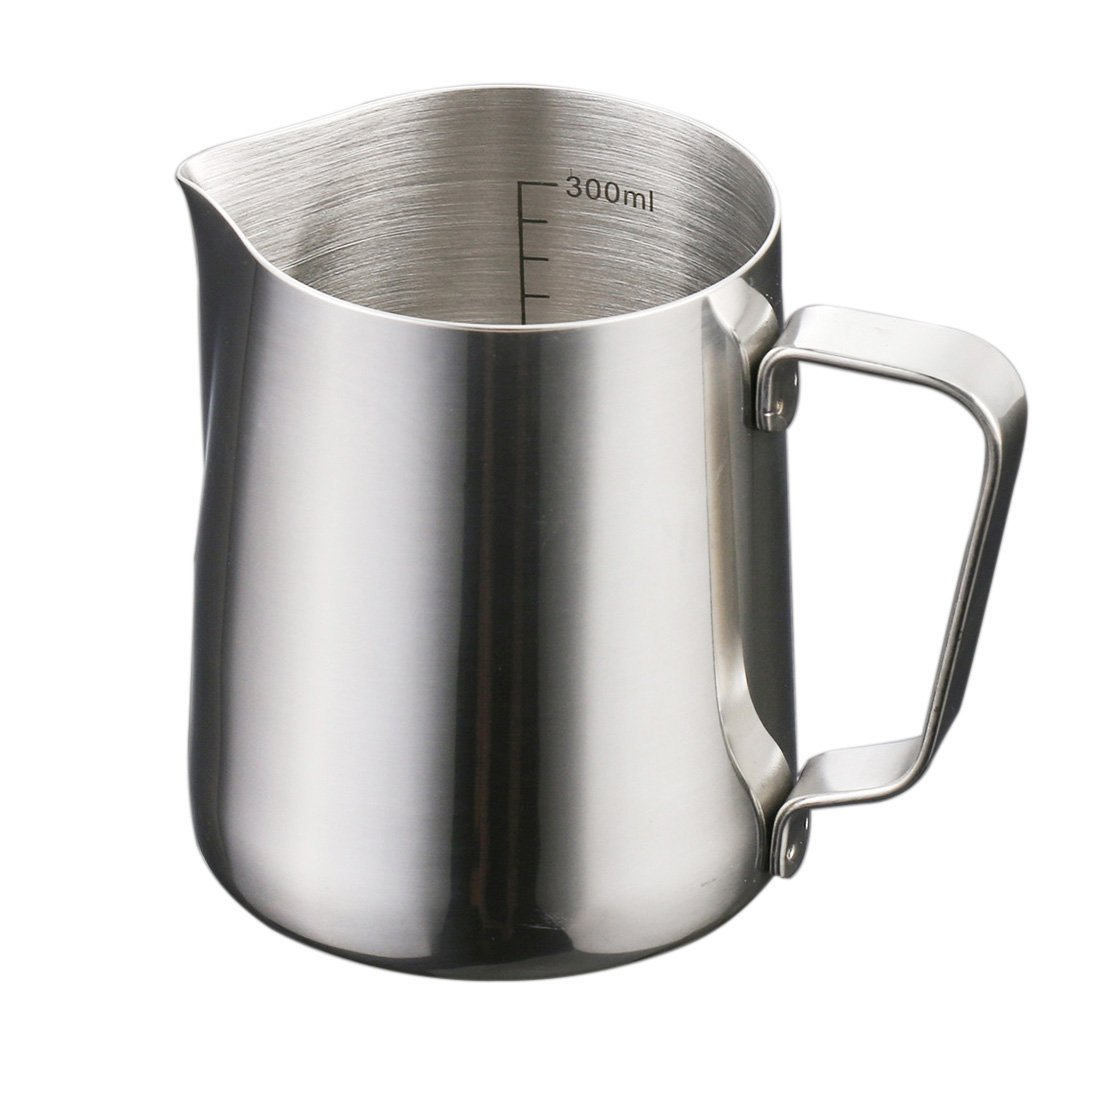 Milk Frothing Pitcher, Yamix Stainless Steel Milk Frothing Pitchers Milk Cup Professional Latte Milk Steaming Pitcher 12oz/300ml for Espresso Maker, Hot Milk Frother & Latte Art